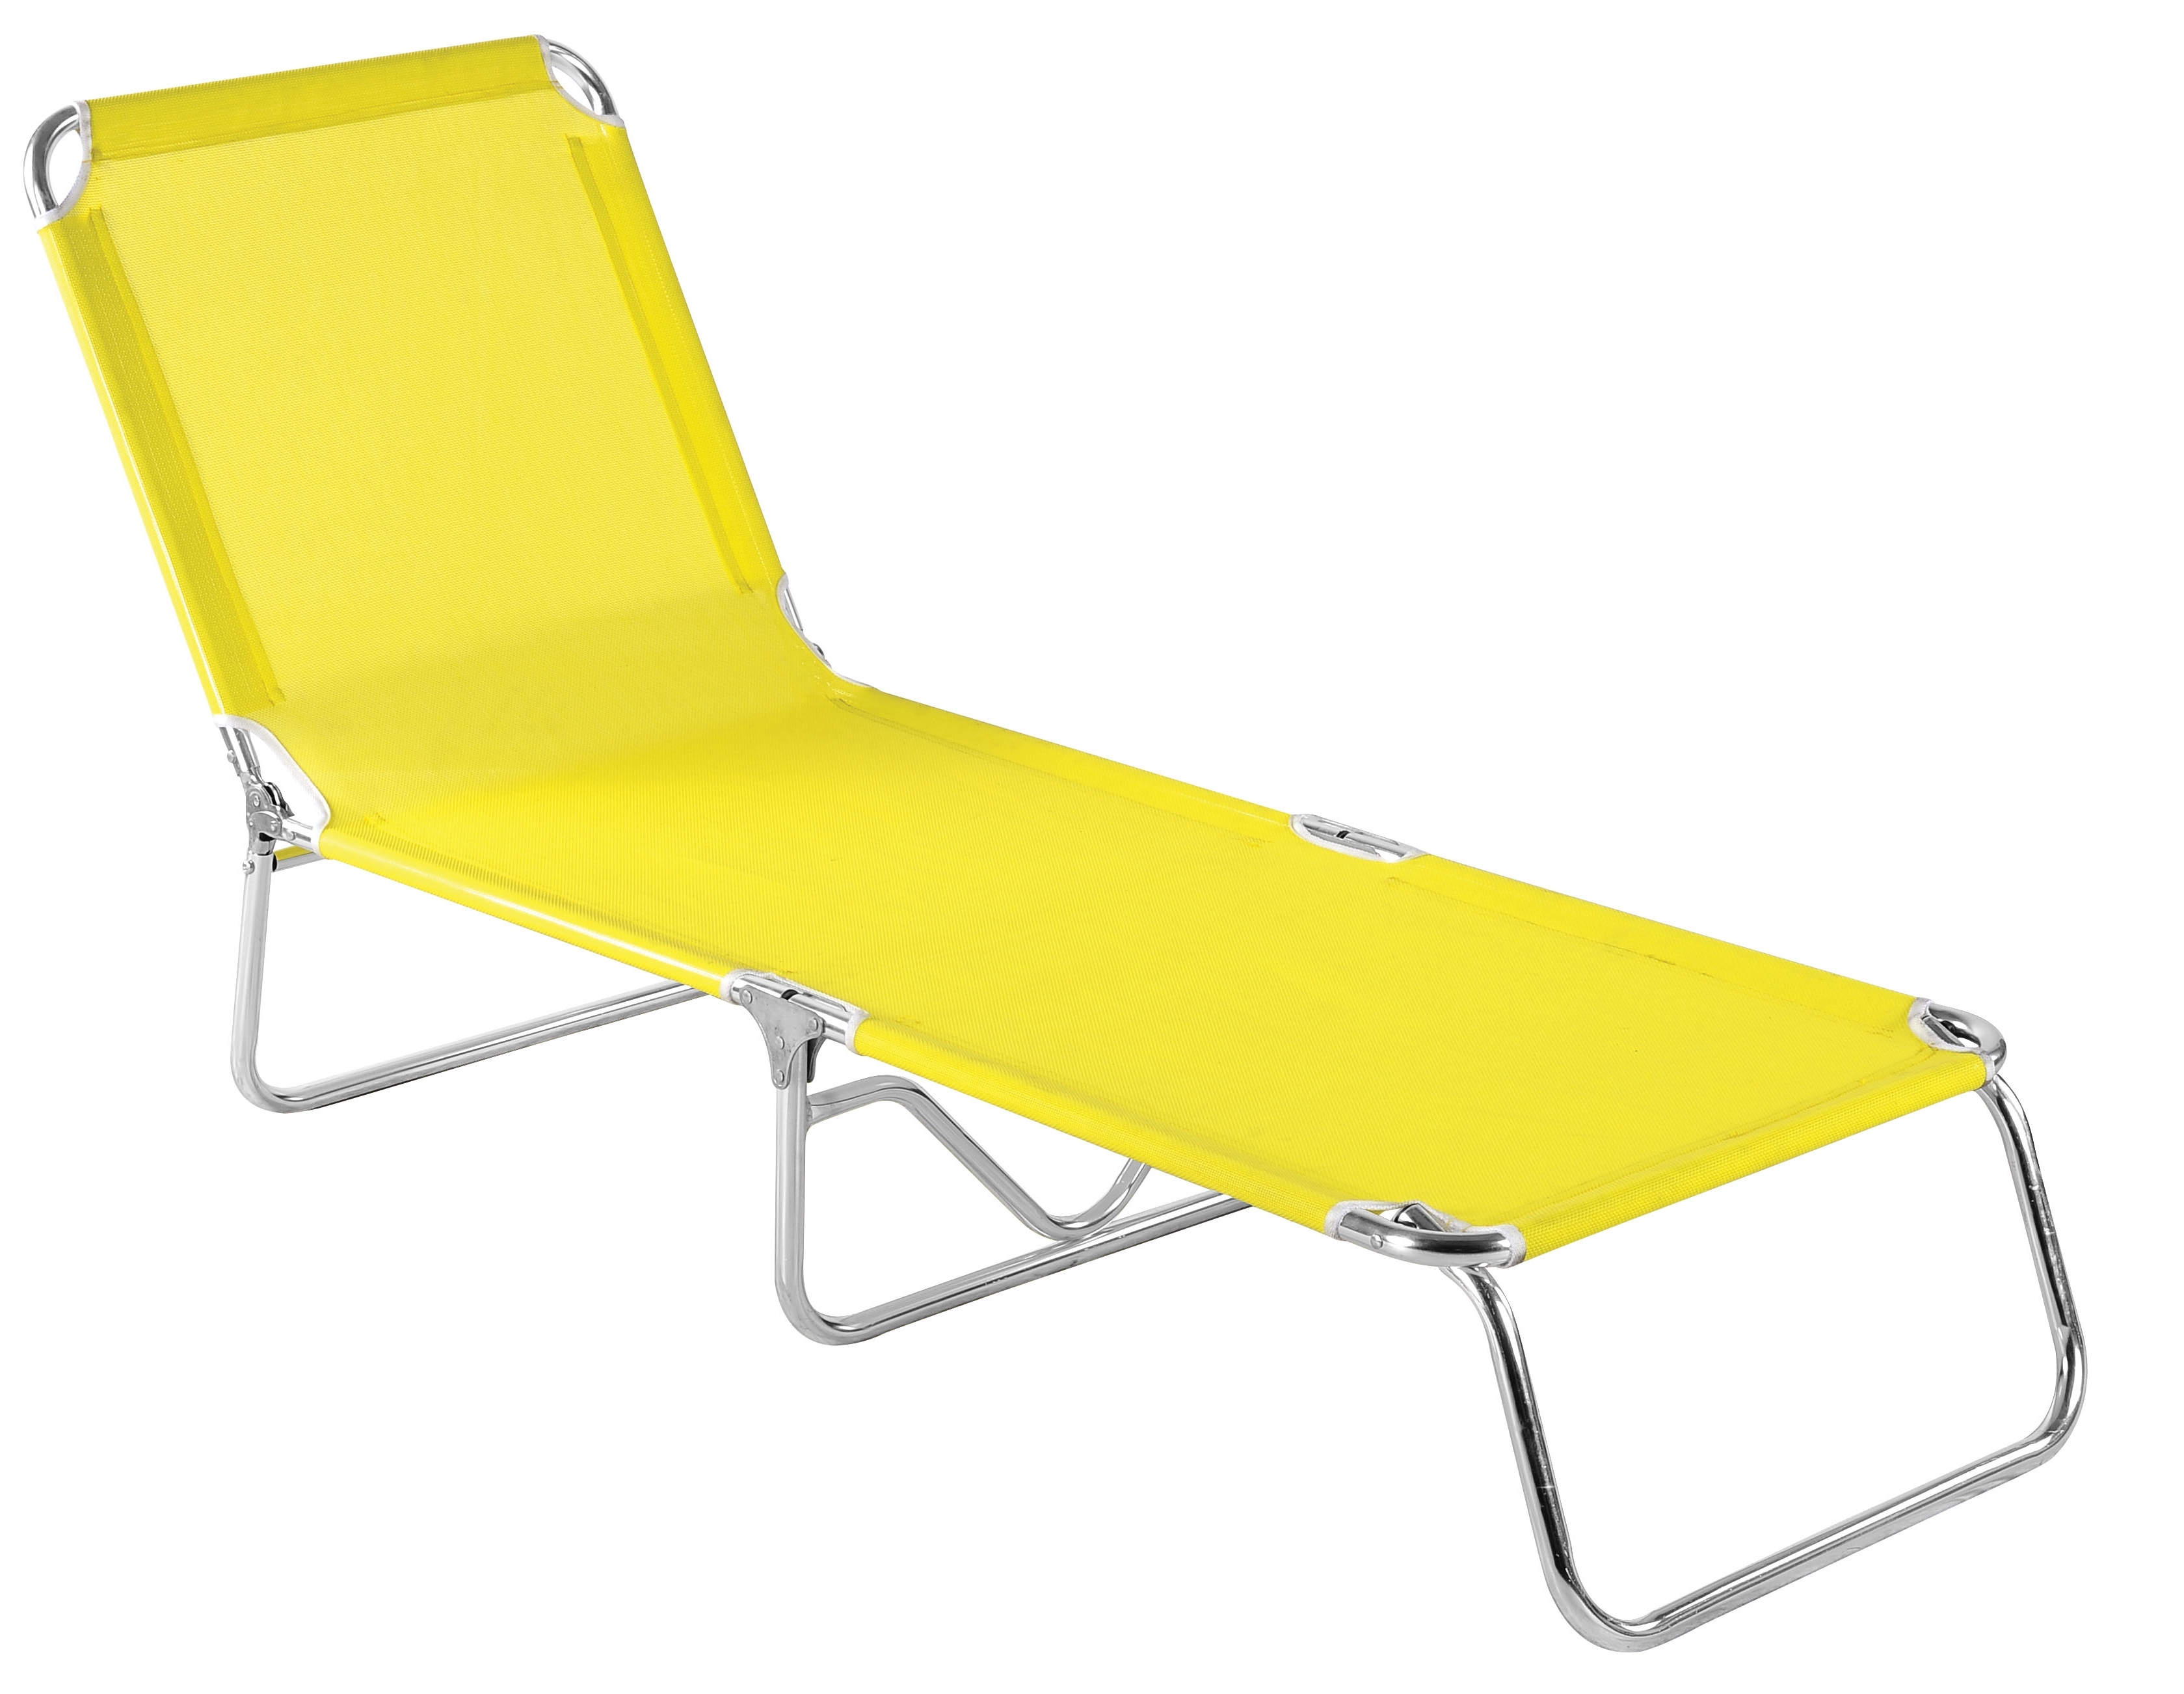 Chaise Lounge Folding Chairs Pertaining To Most Recent Folding Beach Chaise Lounge (View 2 of 15)